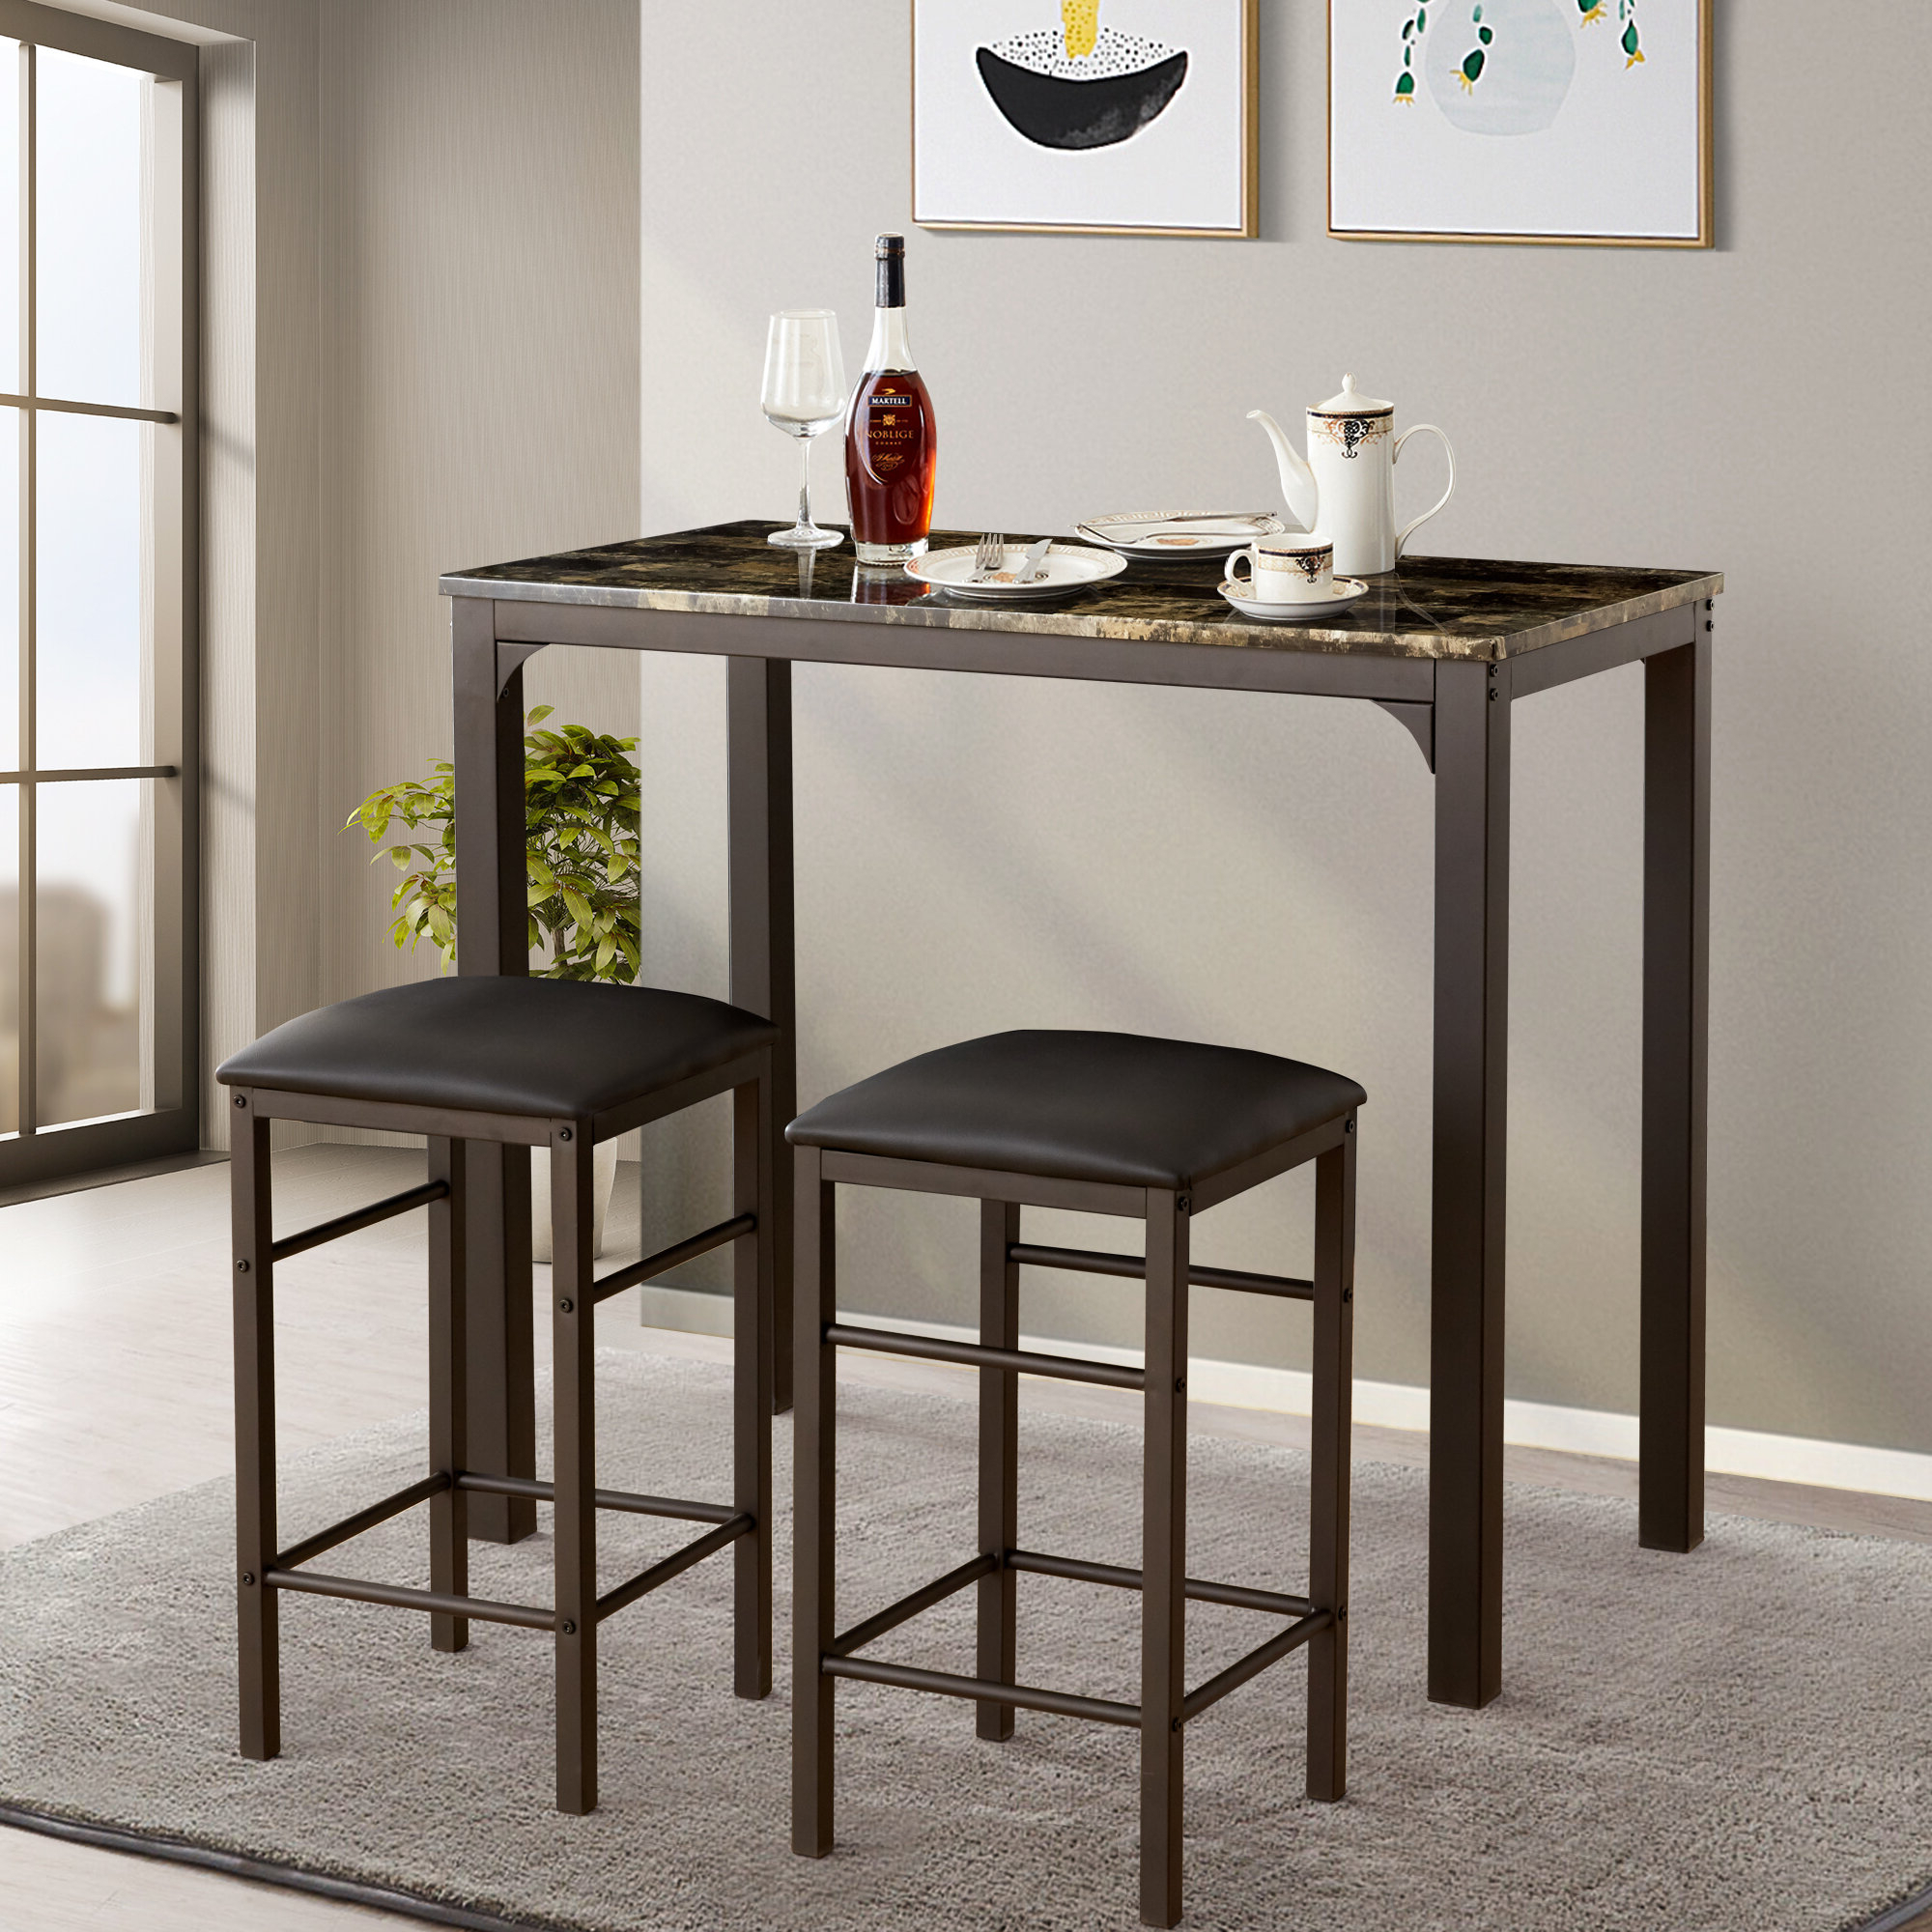 Tappahannock 3 Piece Counter Height Dining Set Throughout Current Moorehead 3 Piece Counter Height Dining Sets (View 2 of 20)